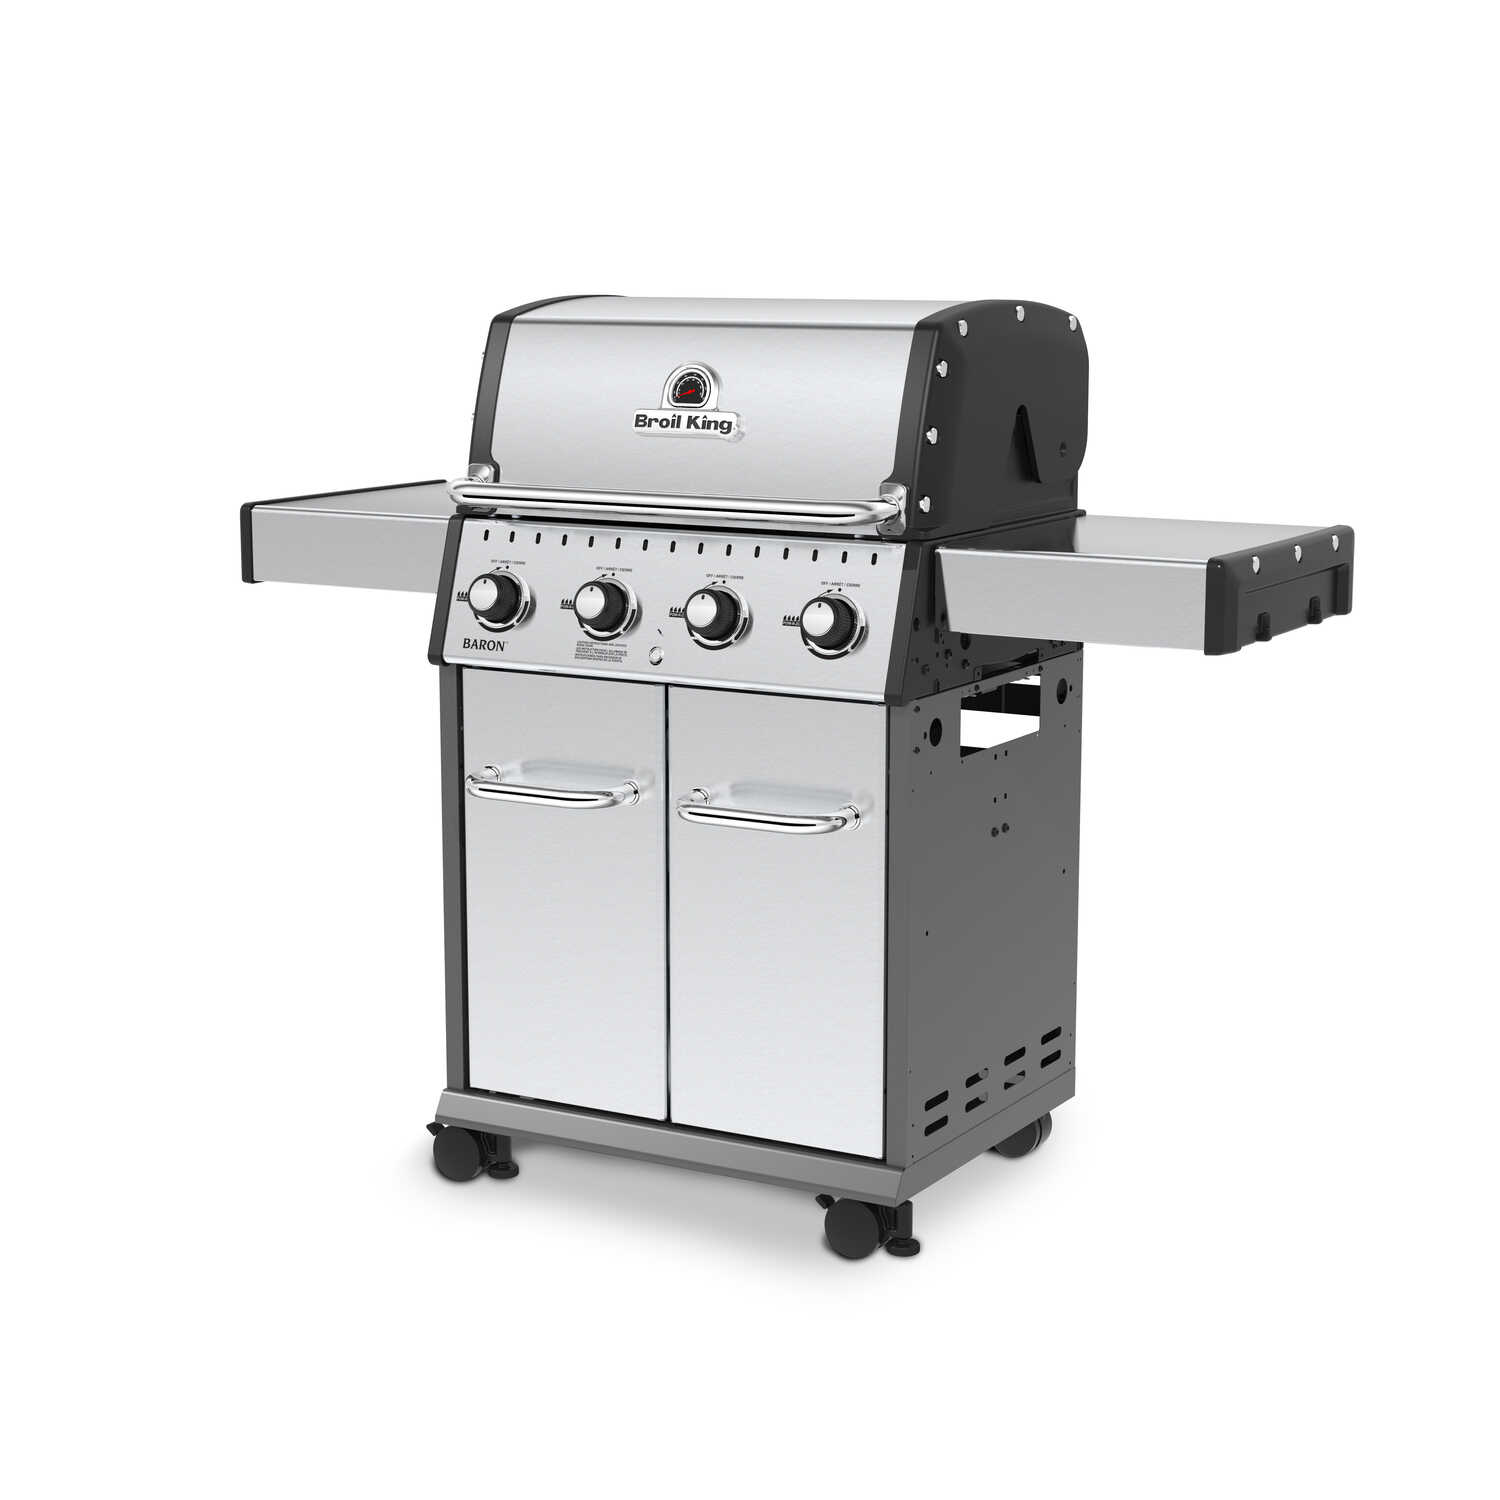 Broil King  Baron S420  Liquid Propane  Freestanding  4 burners Grill  Stainless Steel